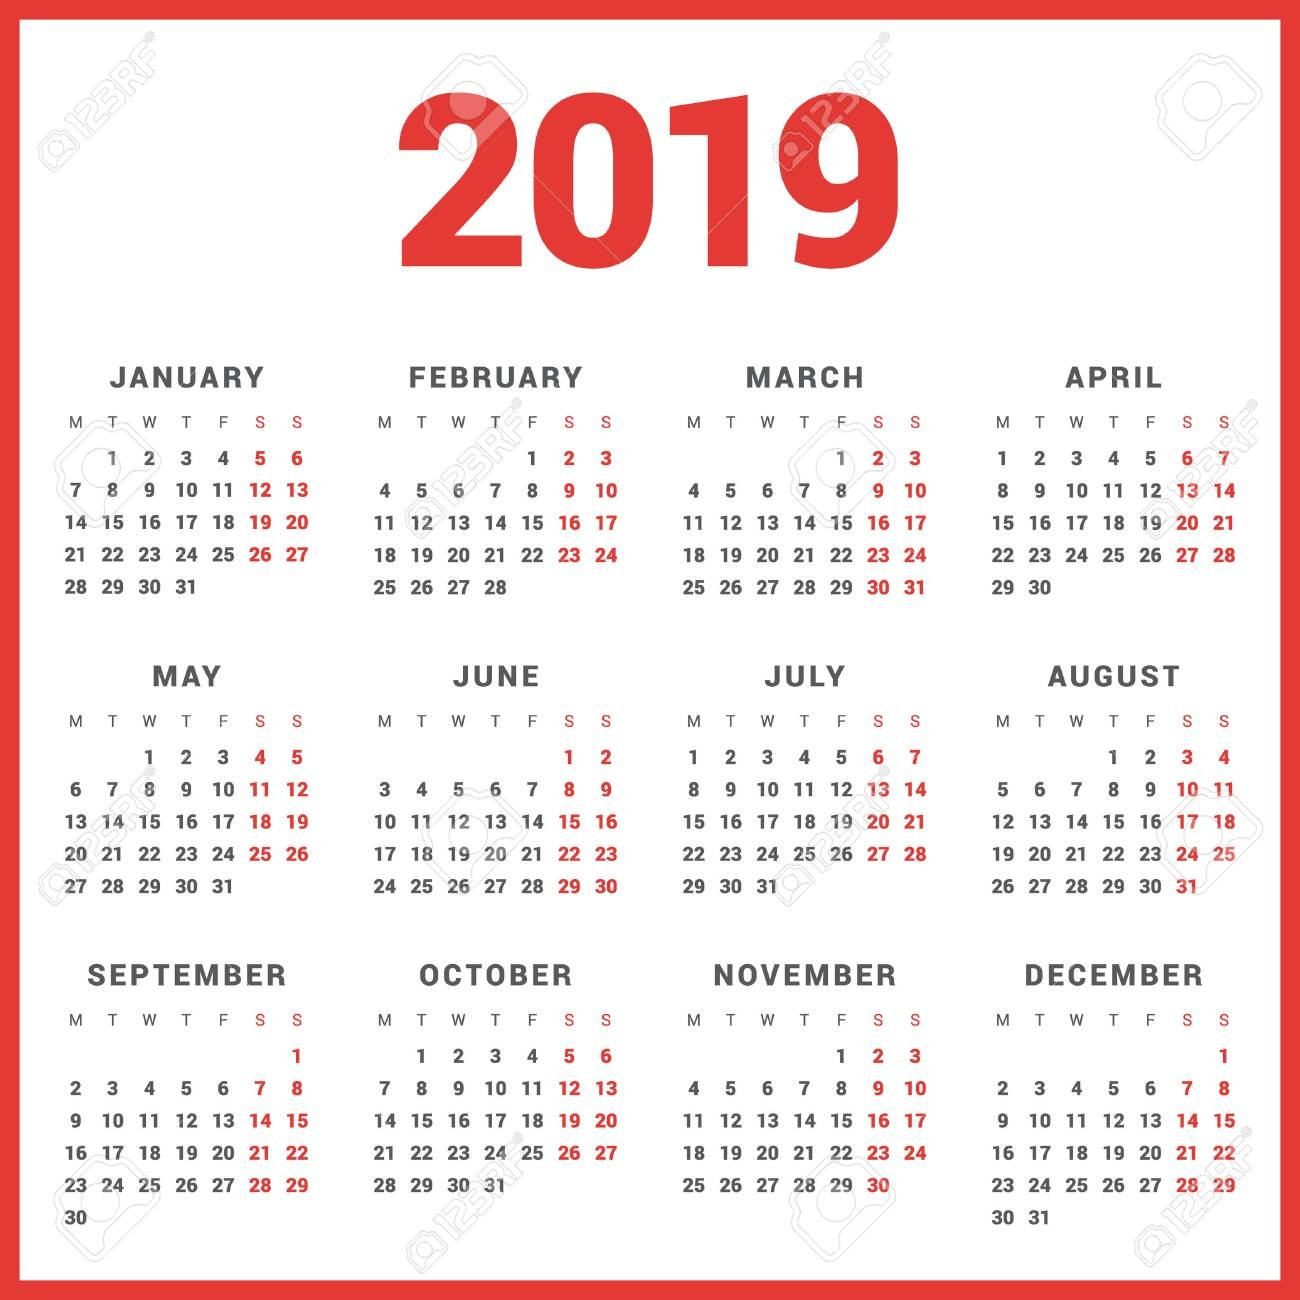 Calendar For 2019 Year On White Background. Week Starts Monday Calendar 2019